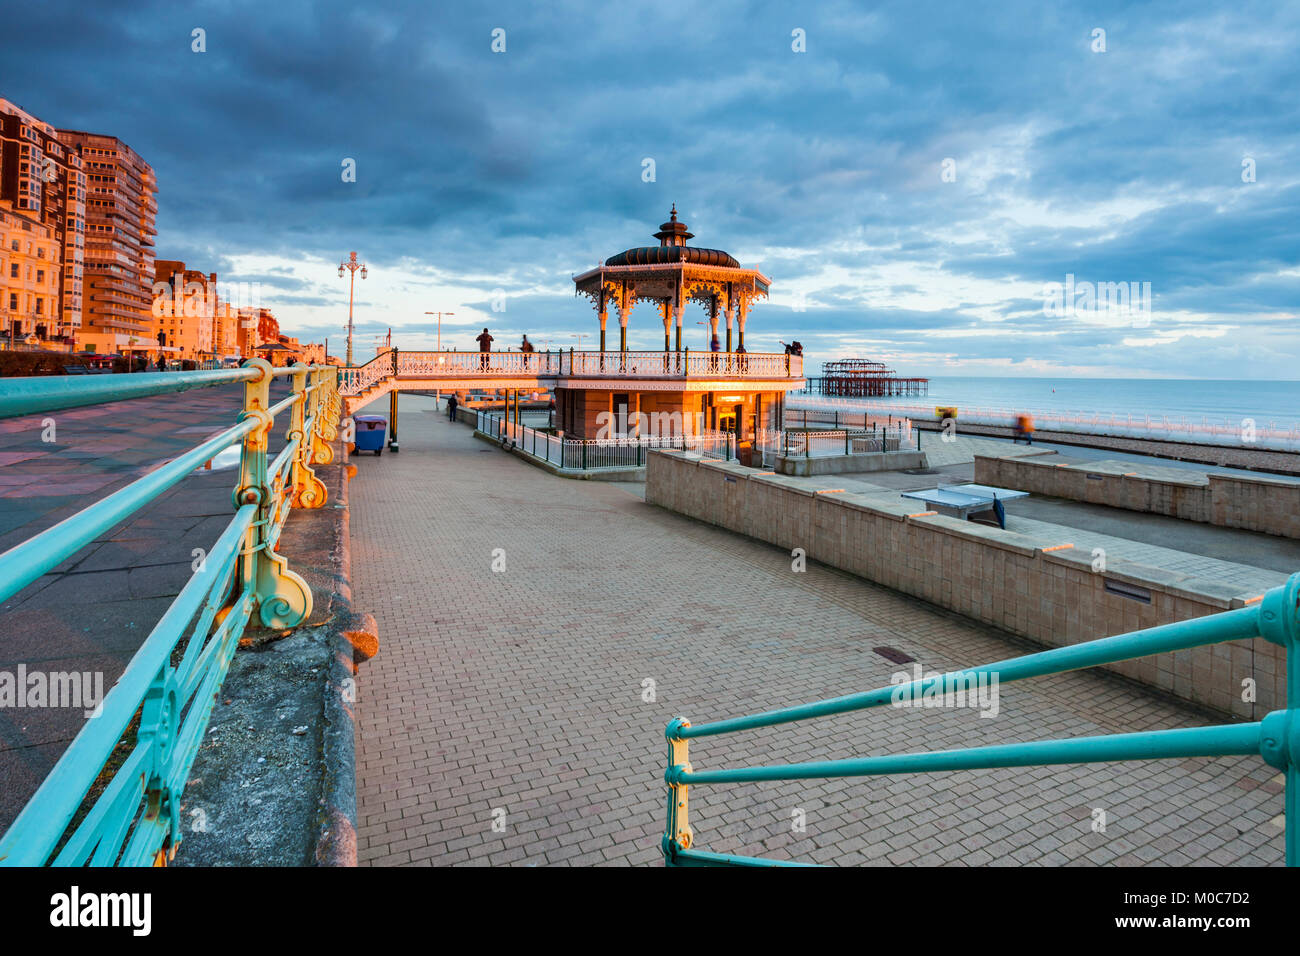 Sunset on Brighton seafront, East Sussex, England. The Bandstand in the distance. - Stock Image